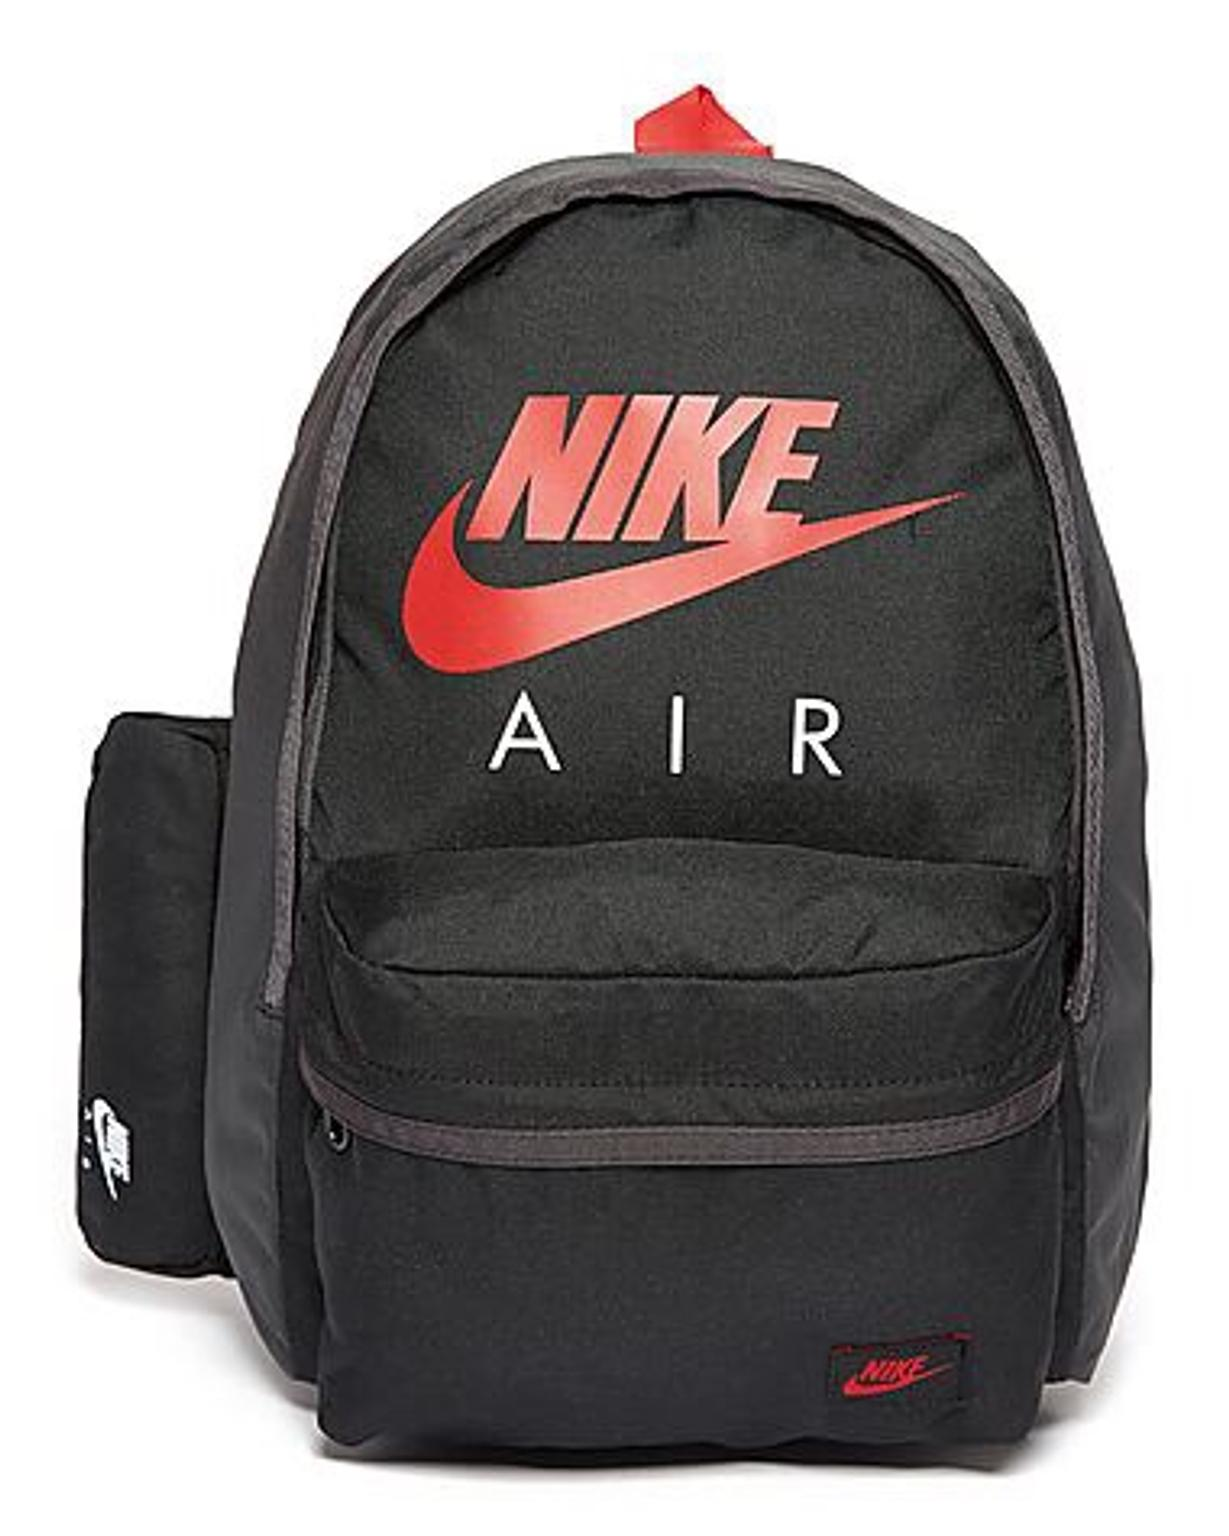 15fe84fbf35c Nike air max bag in B11 Birmingham for £13.99 for sale - Shpock